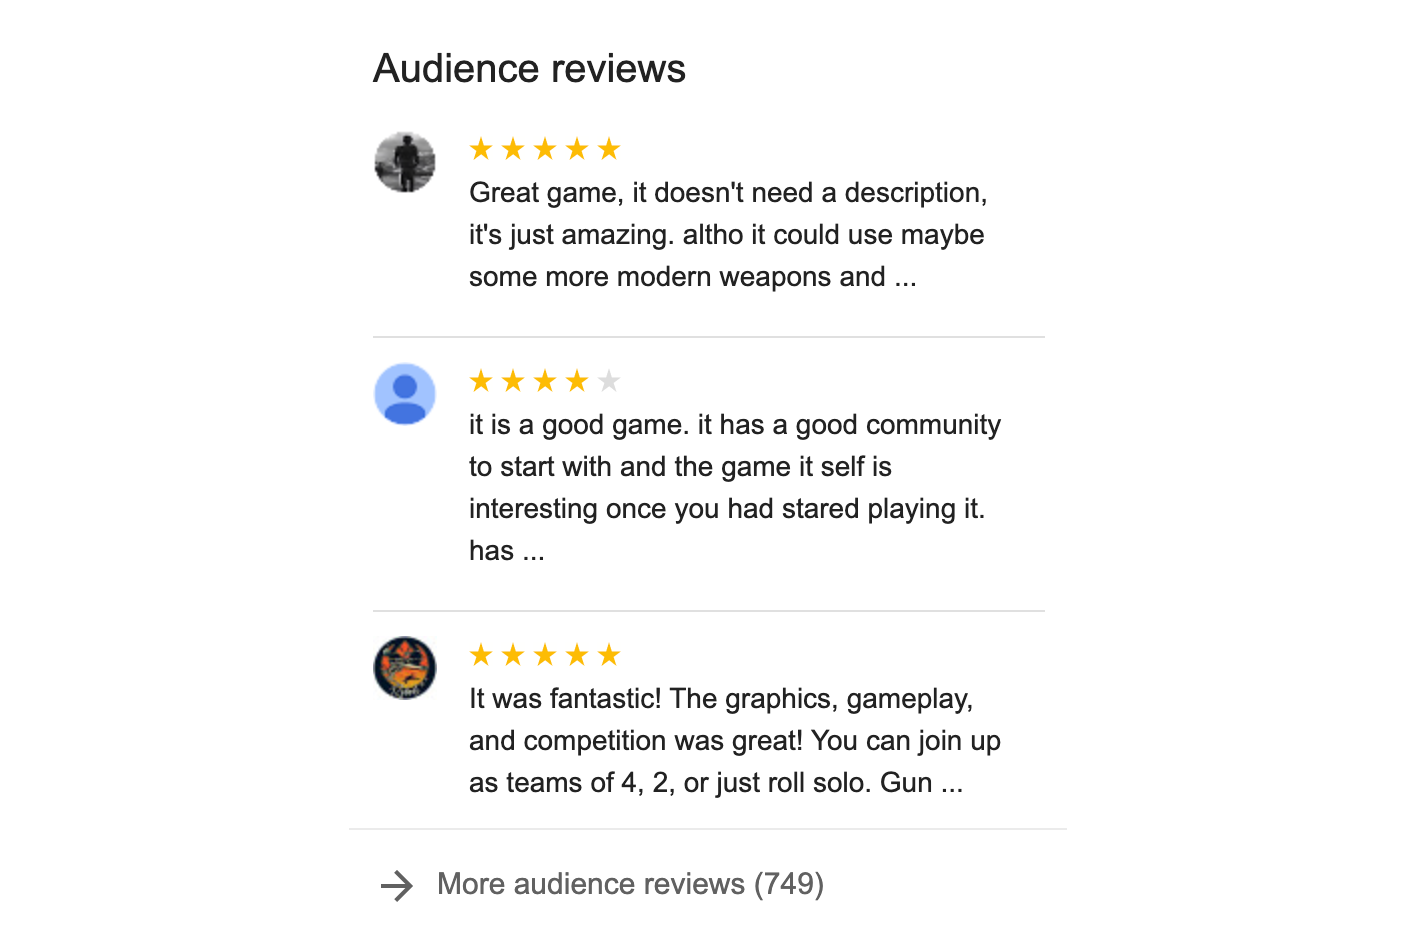 Audience reviews on Google are also a kind of User Generated Content